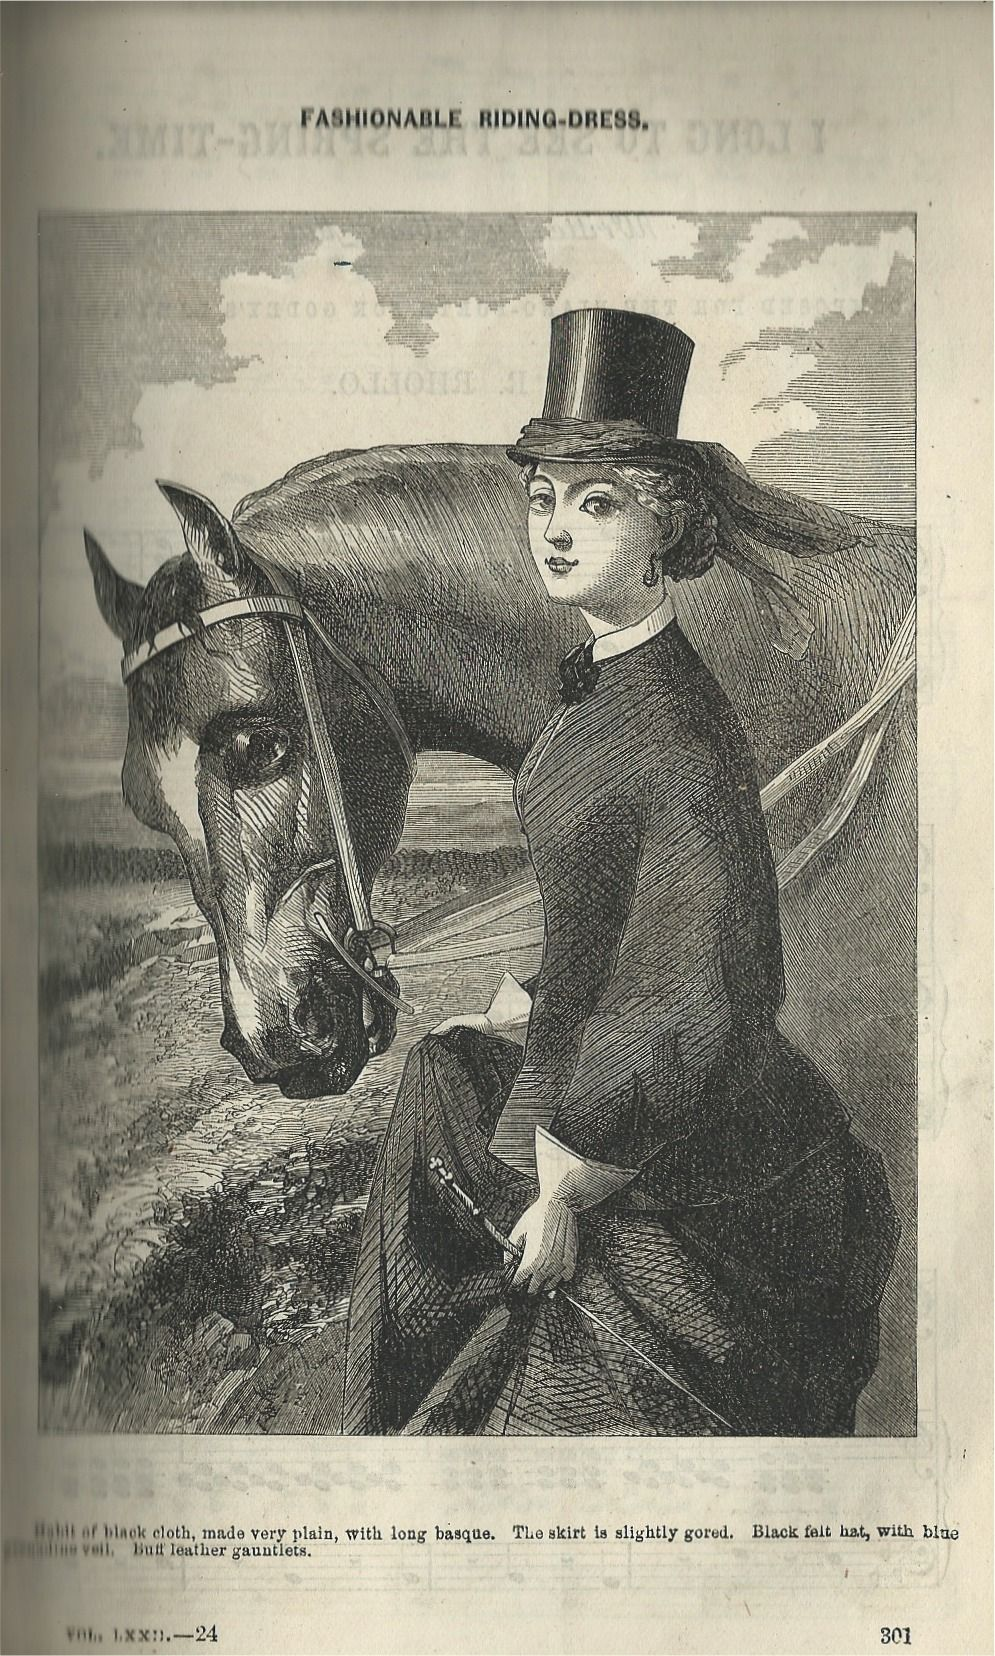 Godey's Lady's Book - Hair and Accessories 1866